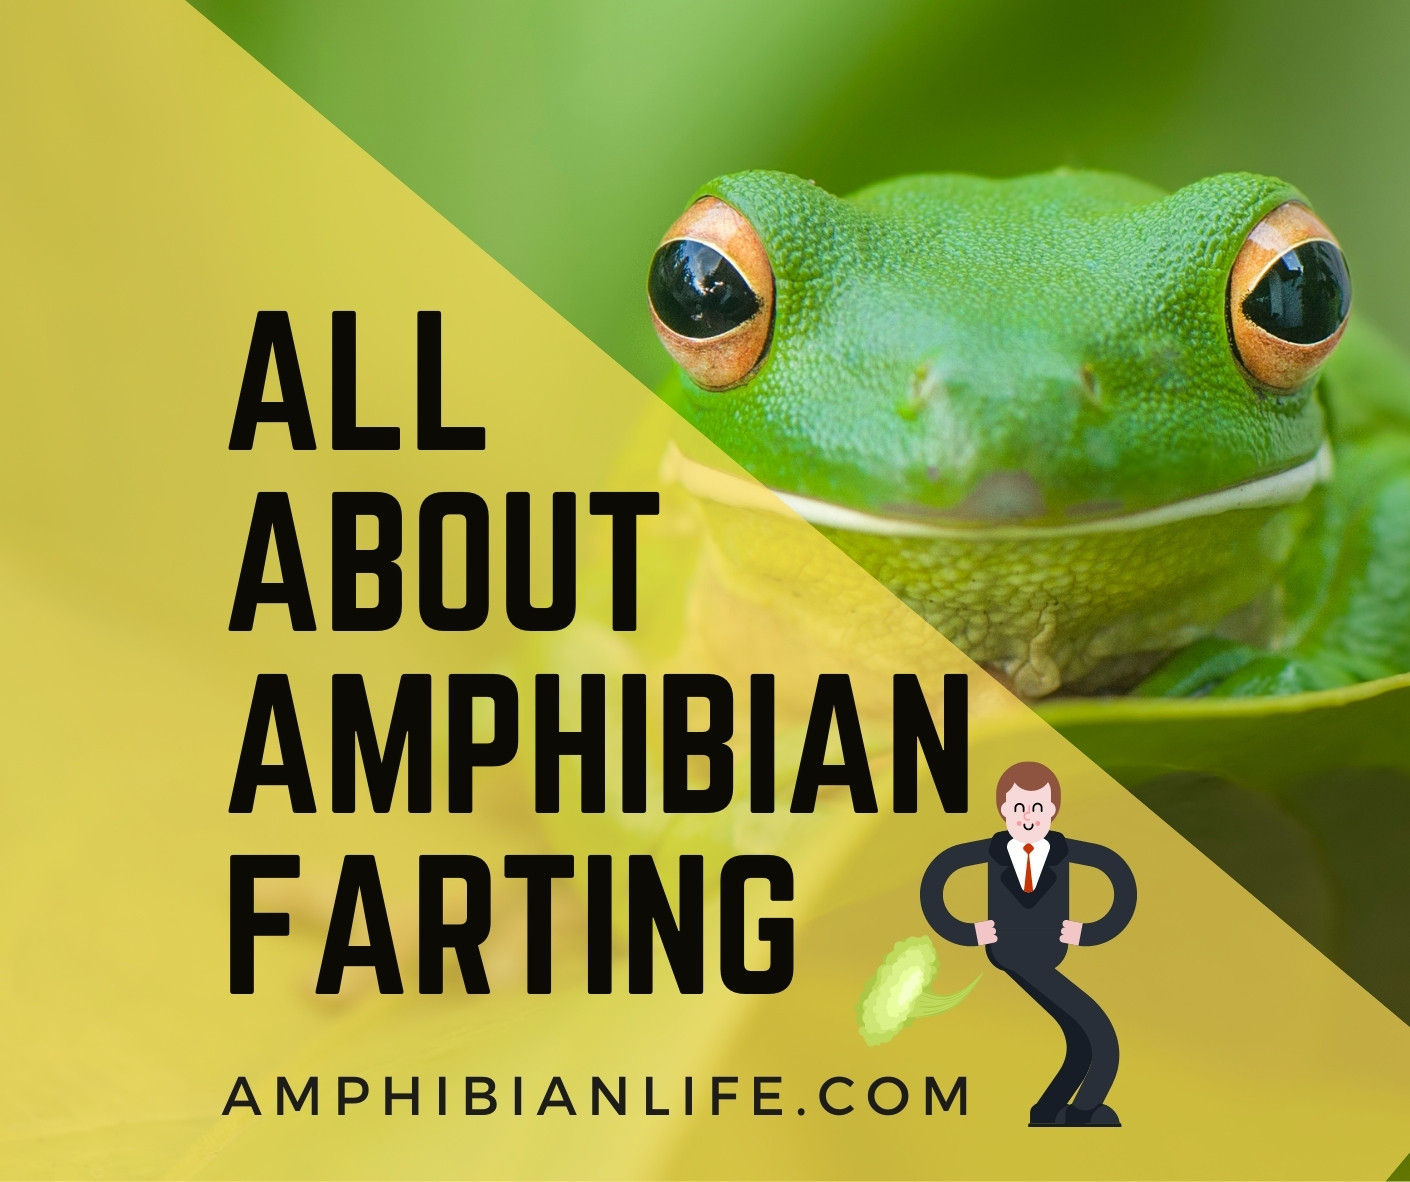 Do all frogs fart